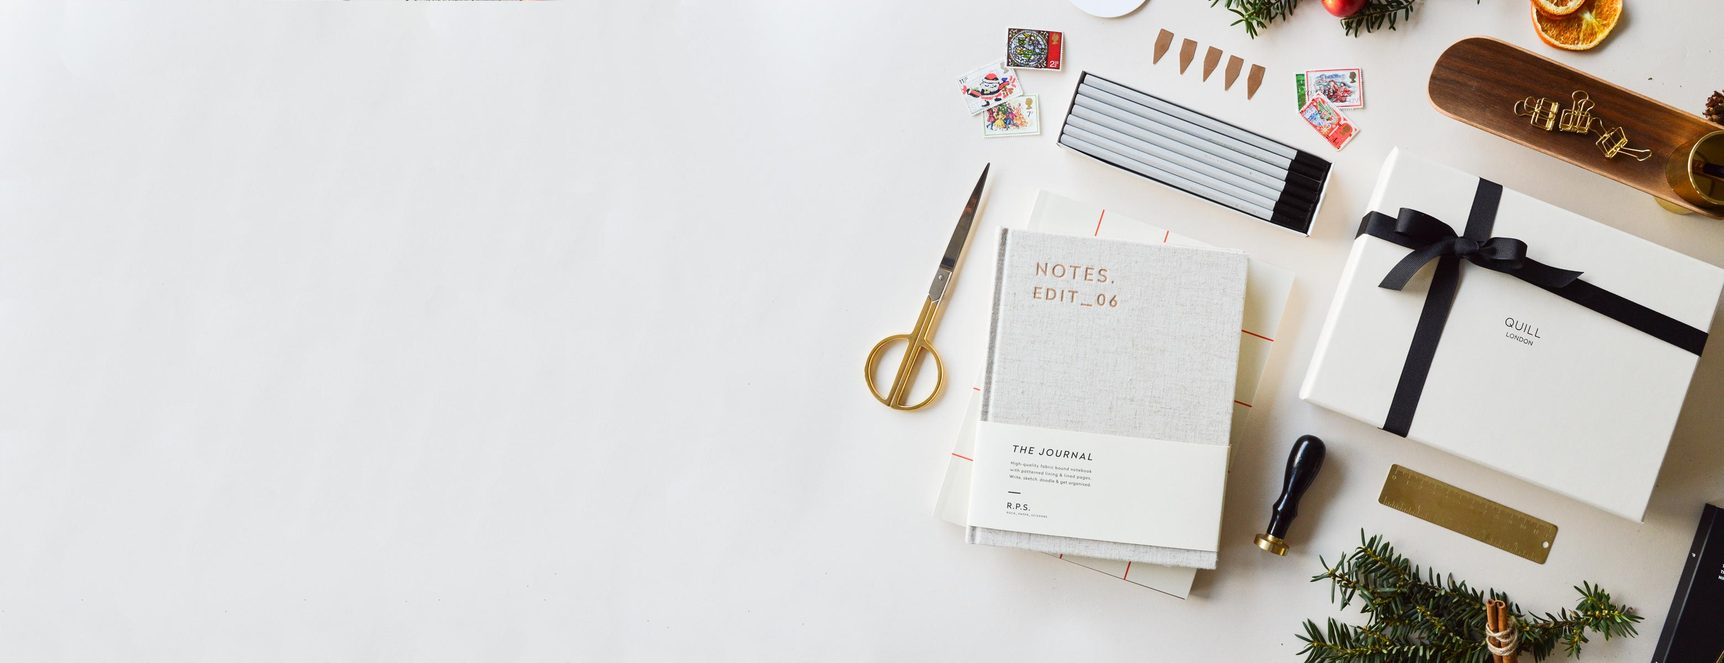 Quill London | Christmas Gifting | Gifts For Stationery Lovers